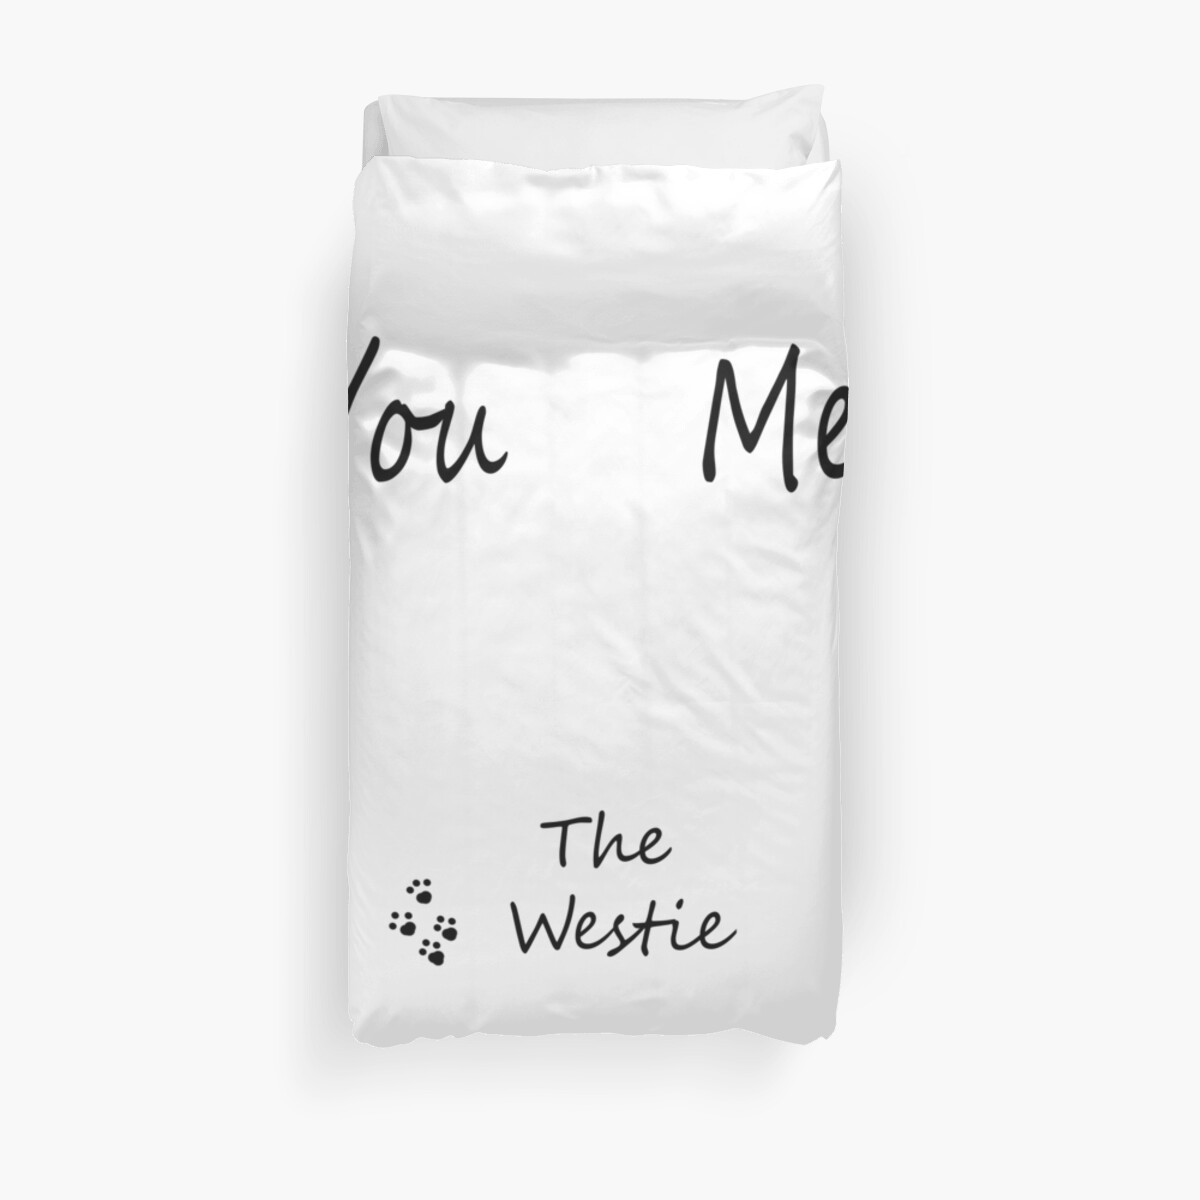 You, Me, THE WESTIE by misslouiselucy